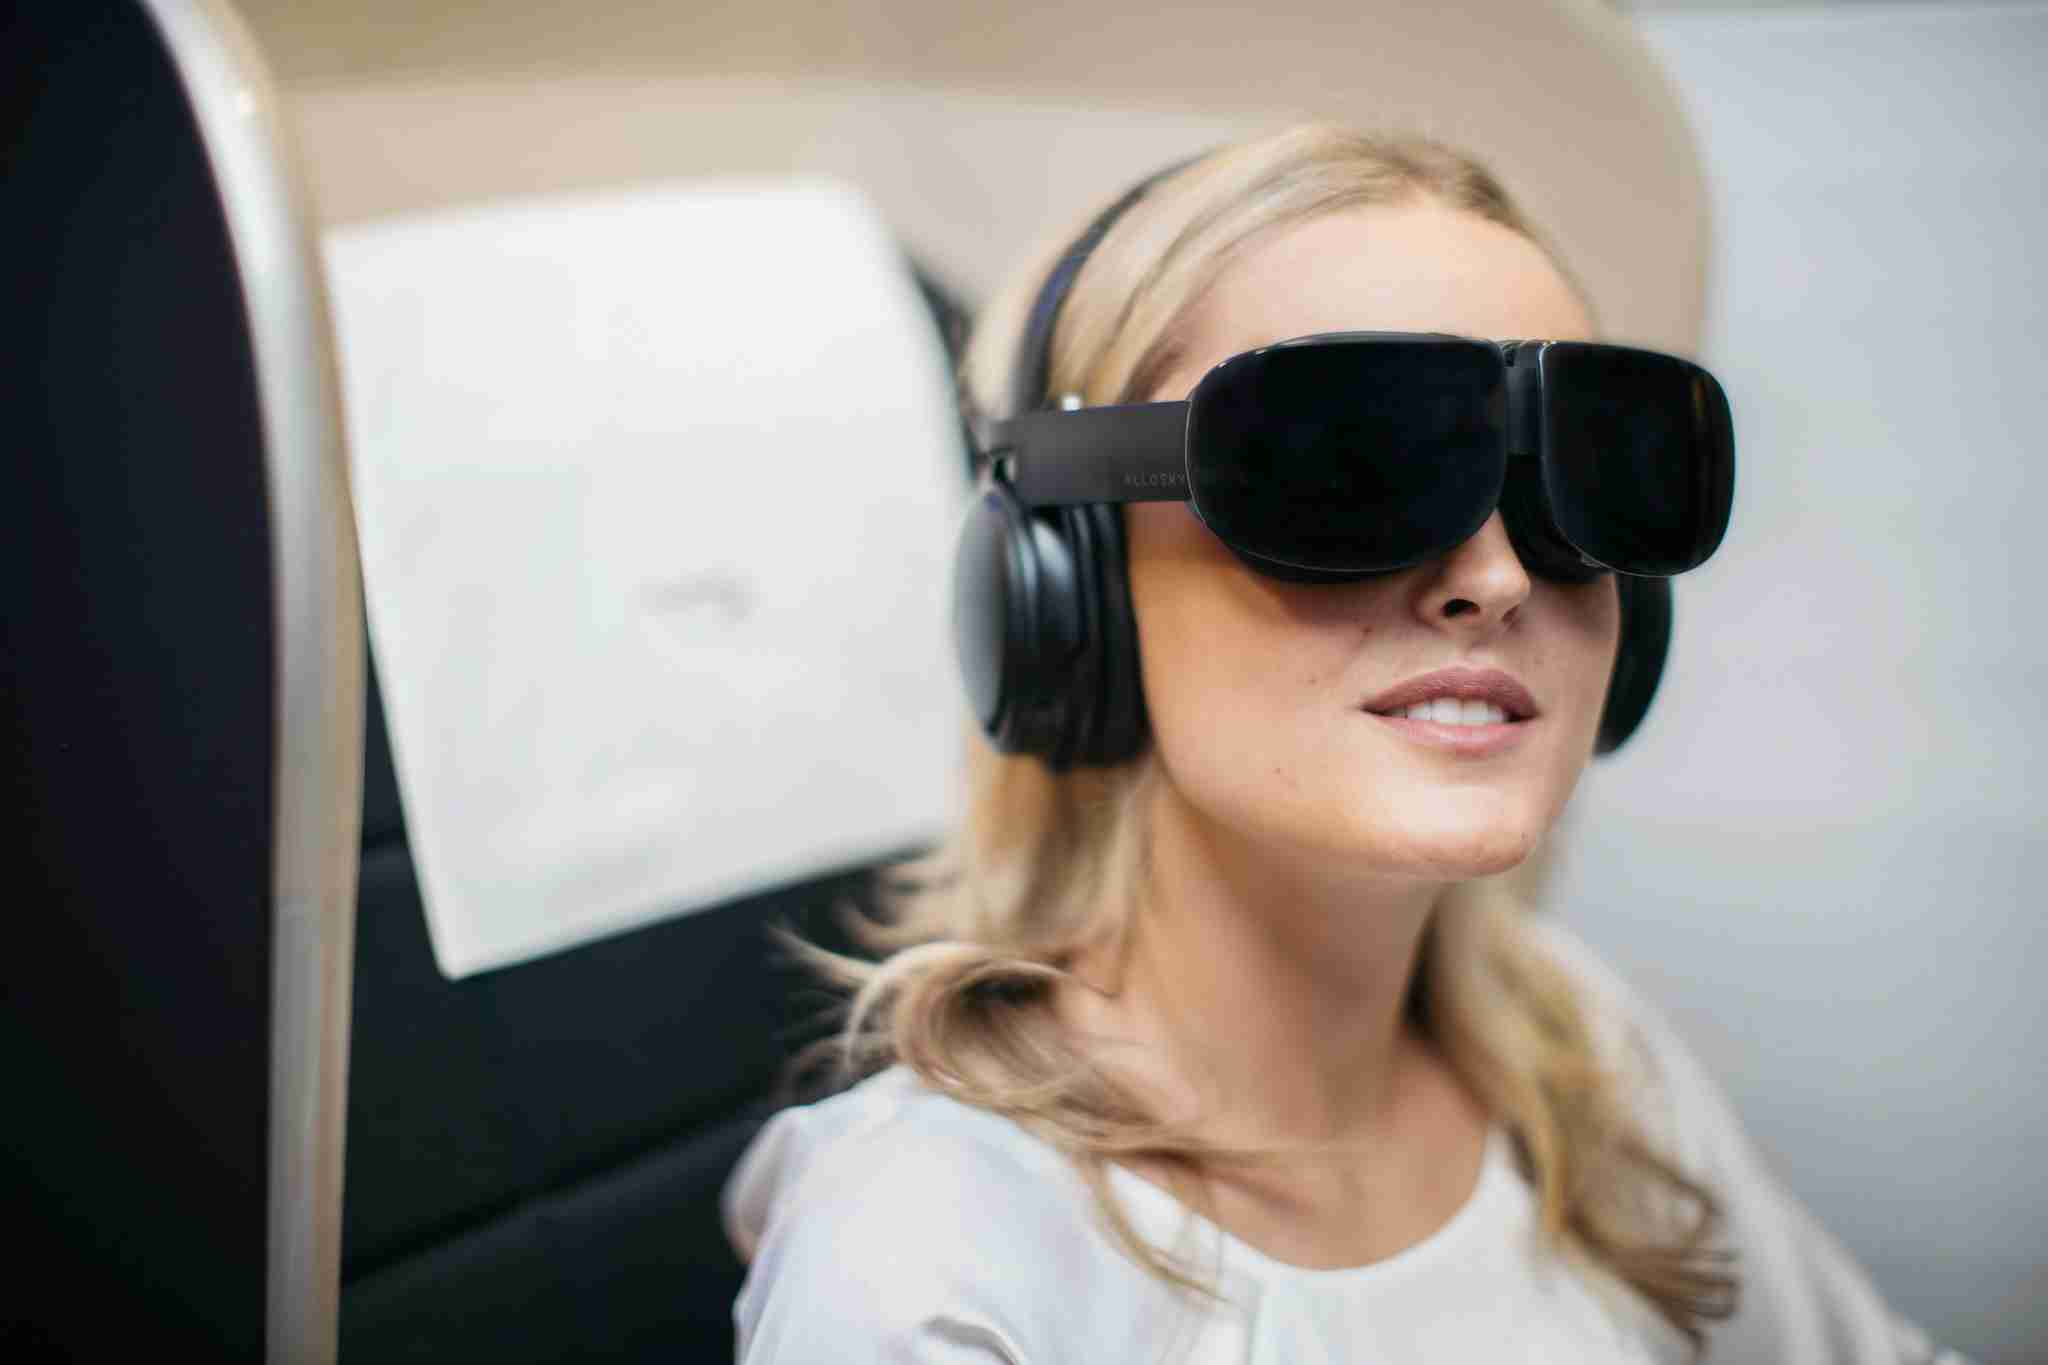 LONDON, UK: British Airways will be bringing First customers a 3D cinema in the skies through virtual reality headsets on select flights, photographed at London Heathrow on 25 July 2019 (Picture by Nick Morrish/British Airways)